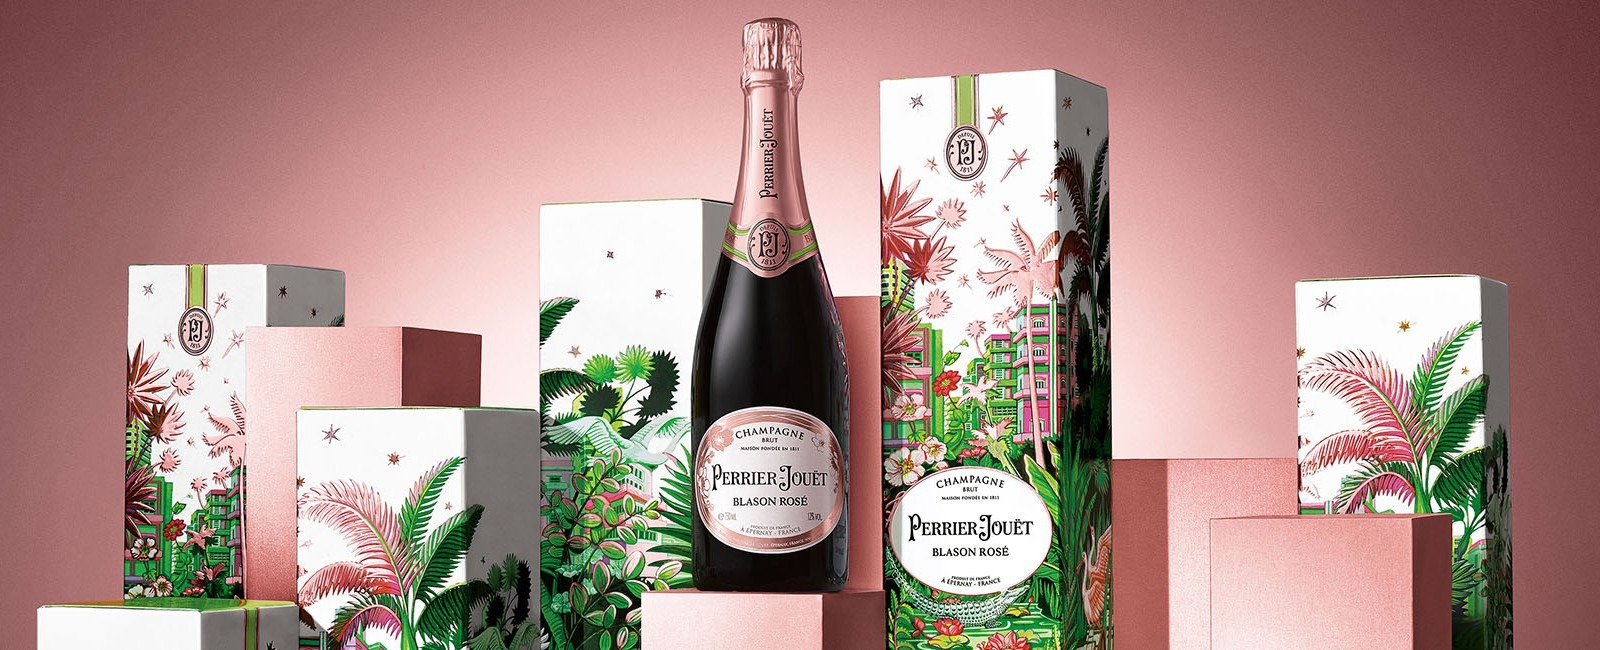 VALENTINE'S DAY LIMITED EDITION - PERRIER-JOUËT BLASON ROSÉ CHAMPAGNE